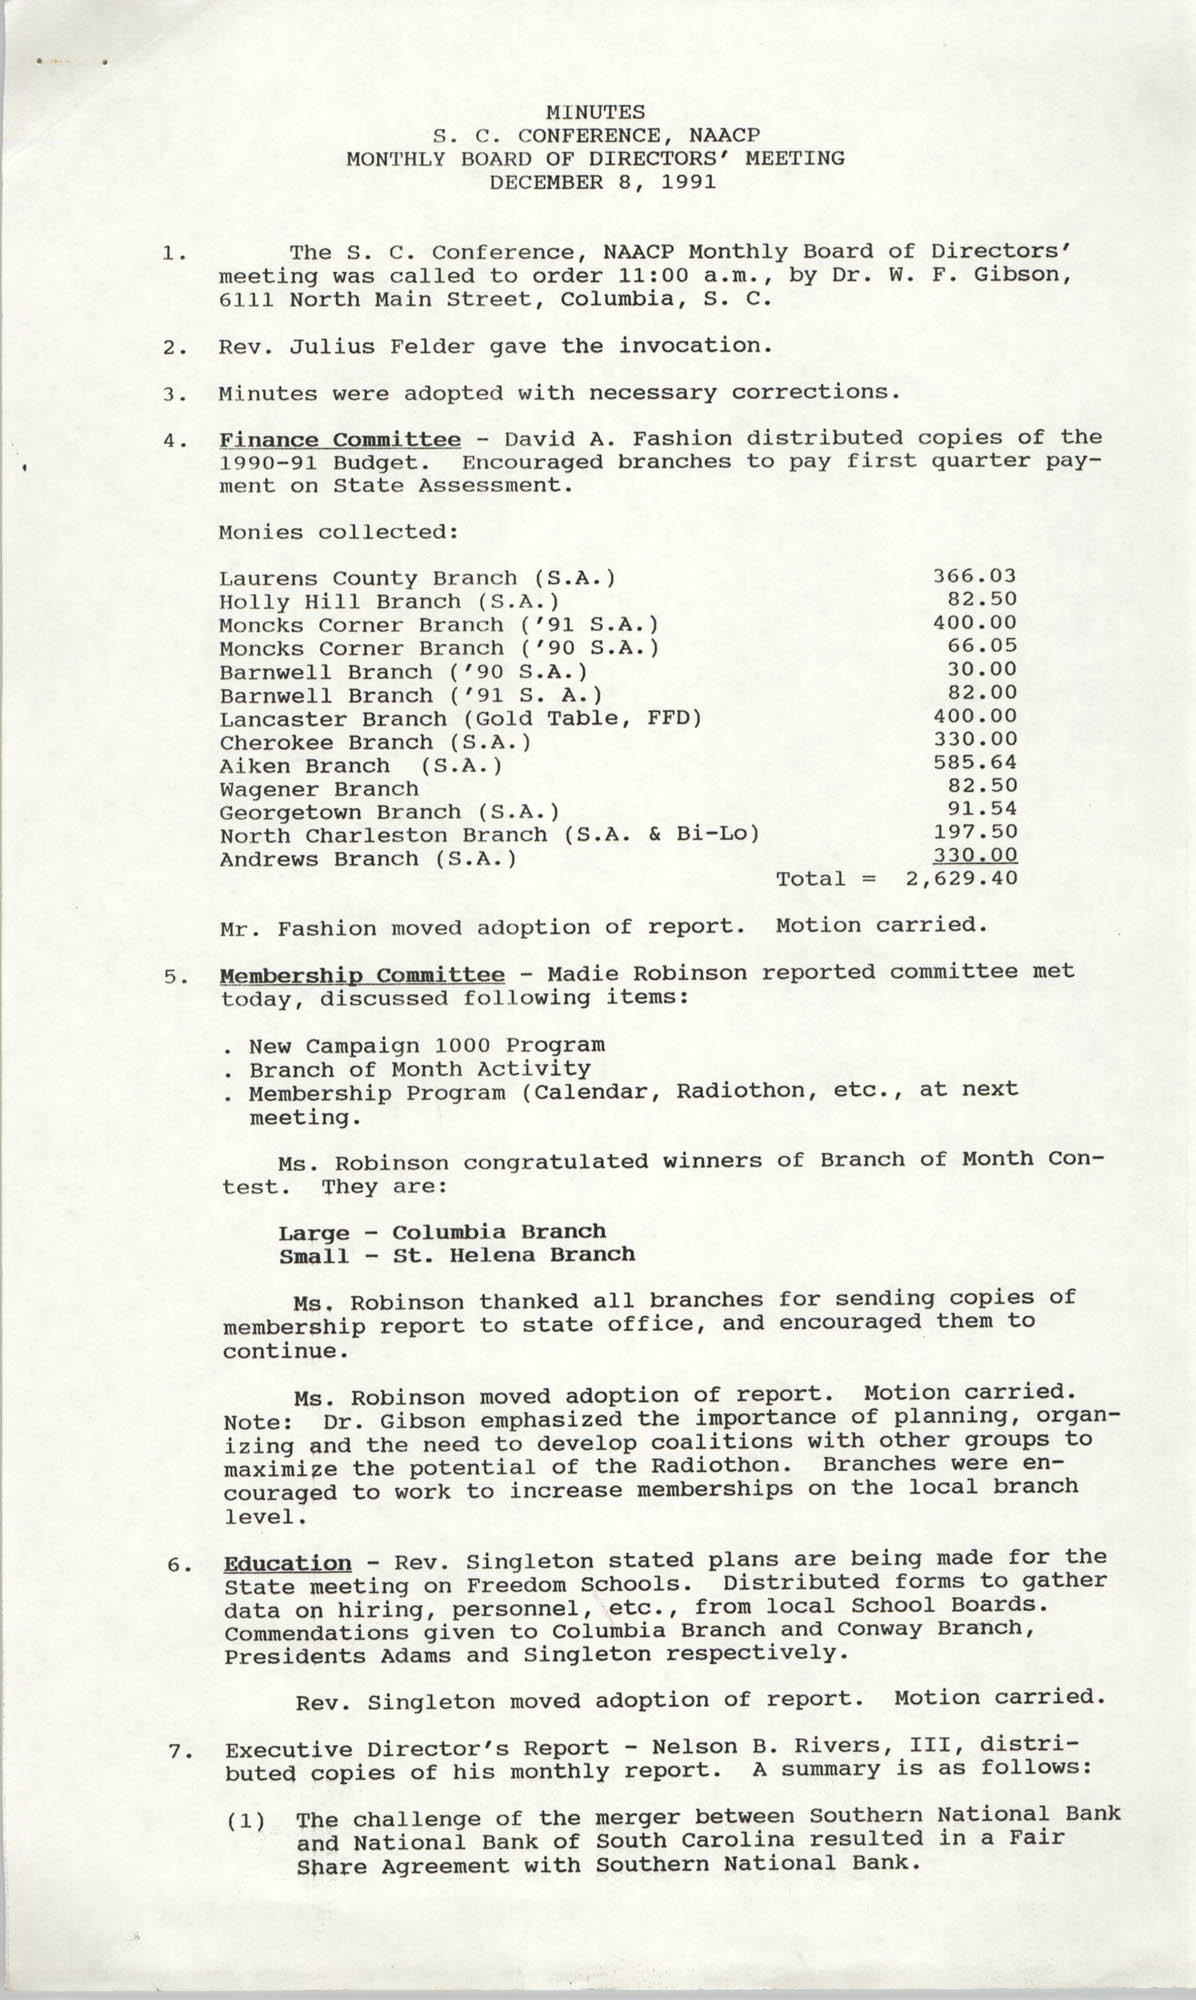 Minutes, South Carolina Conference of Branches of the NAACP, December 8, 1991